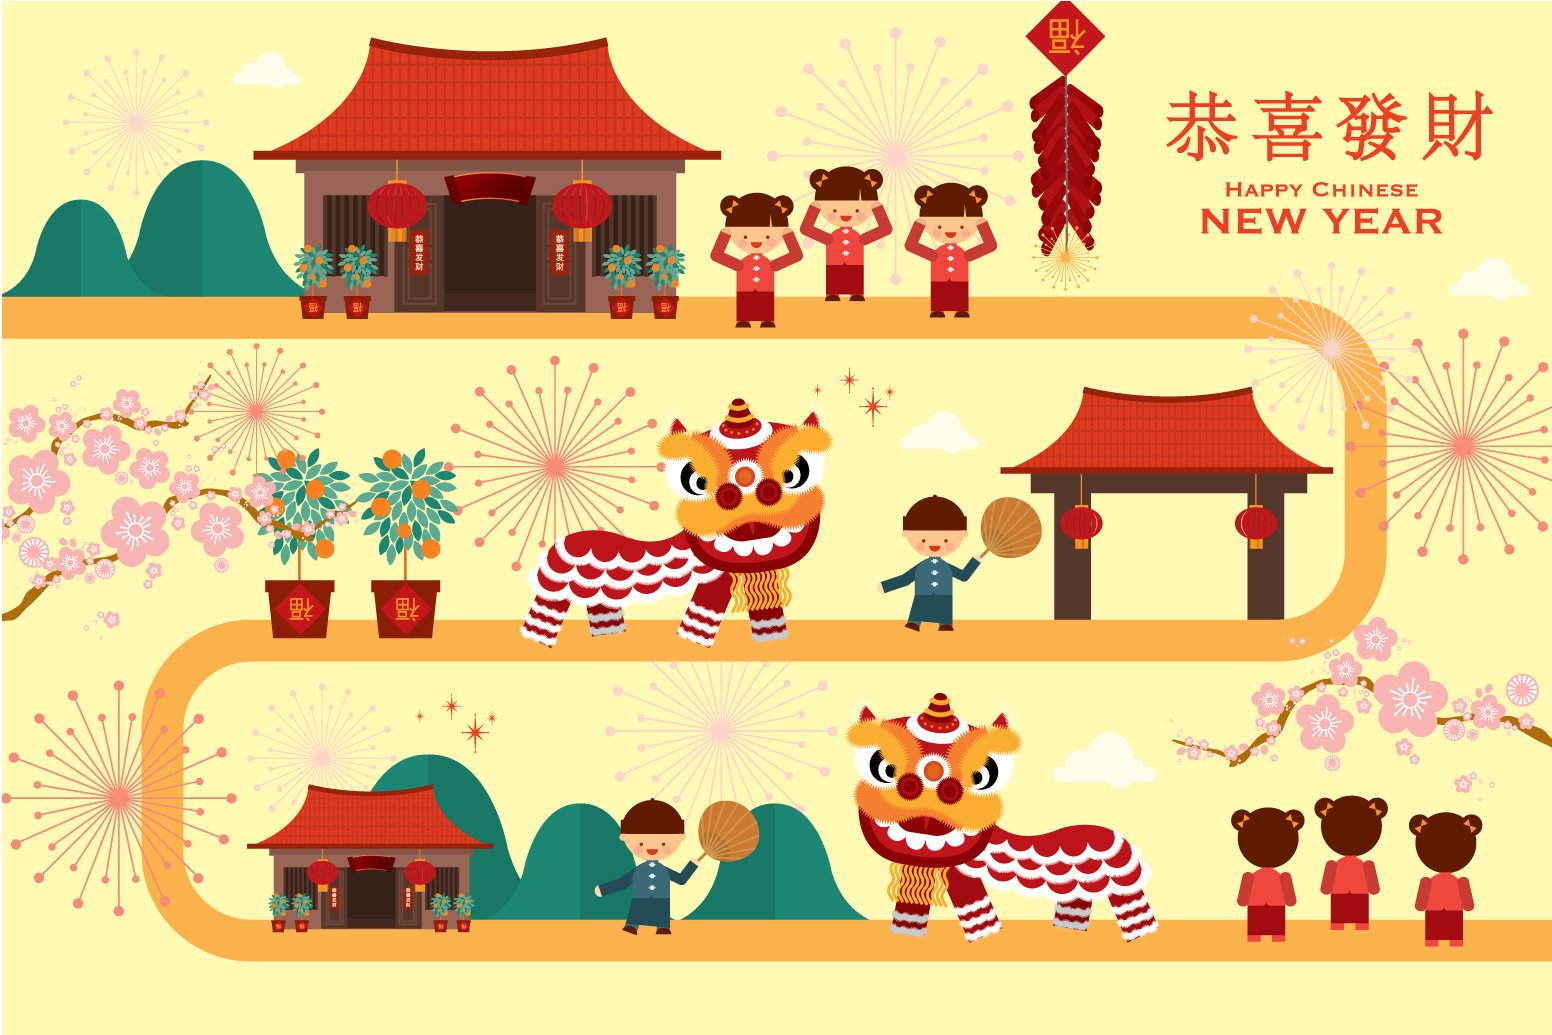 Chinese Calendar Illustration : Chinese lunar new year vector illustrations creative